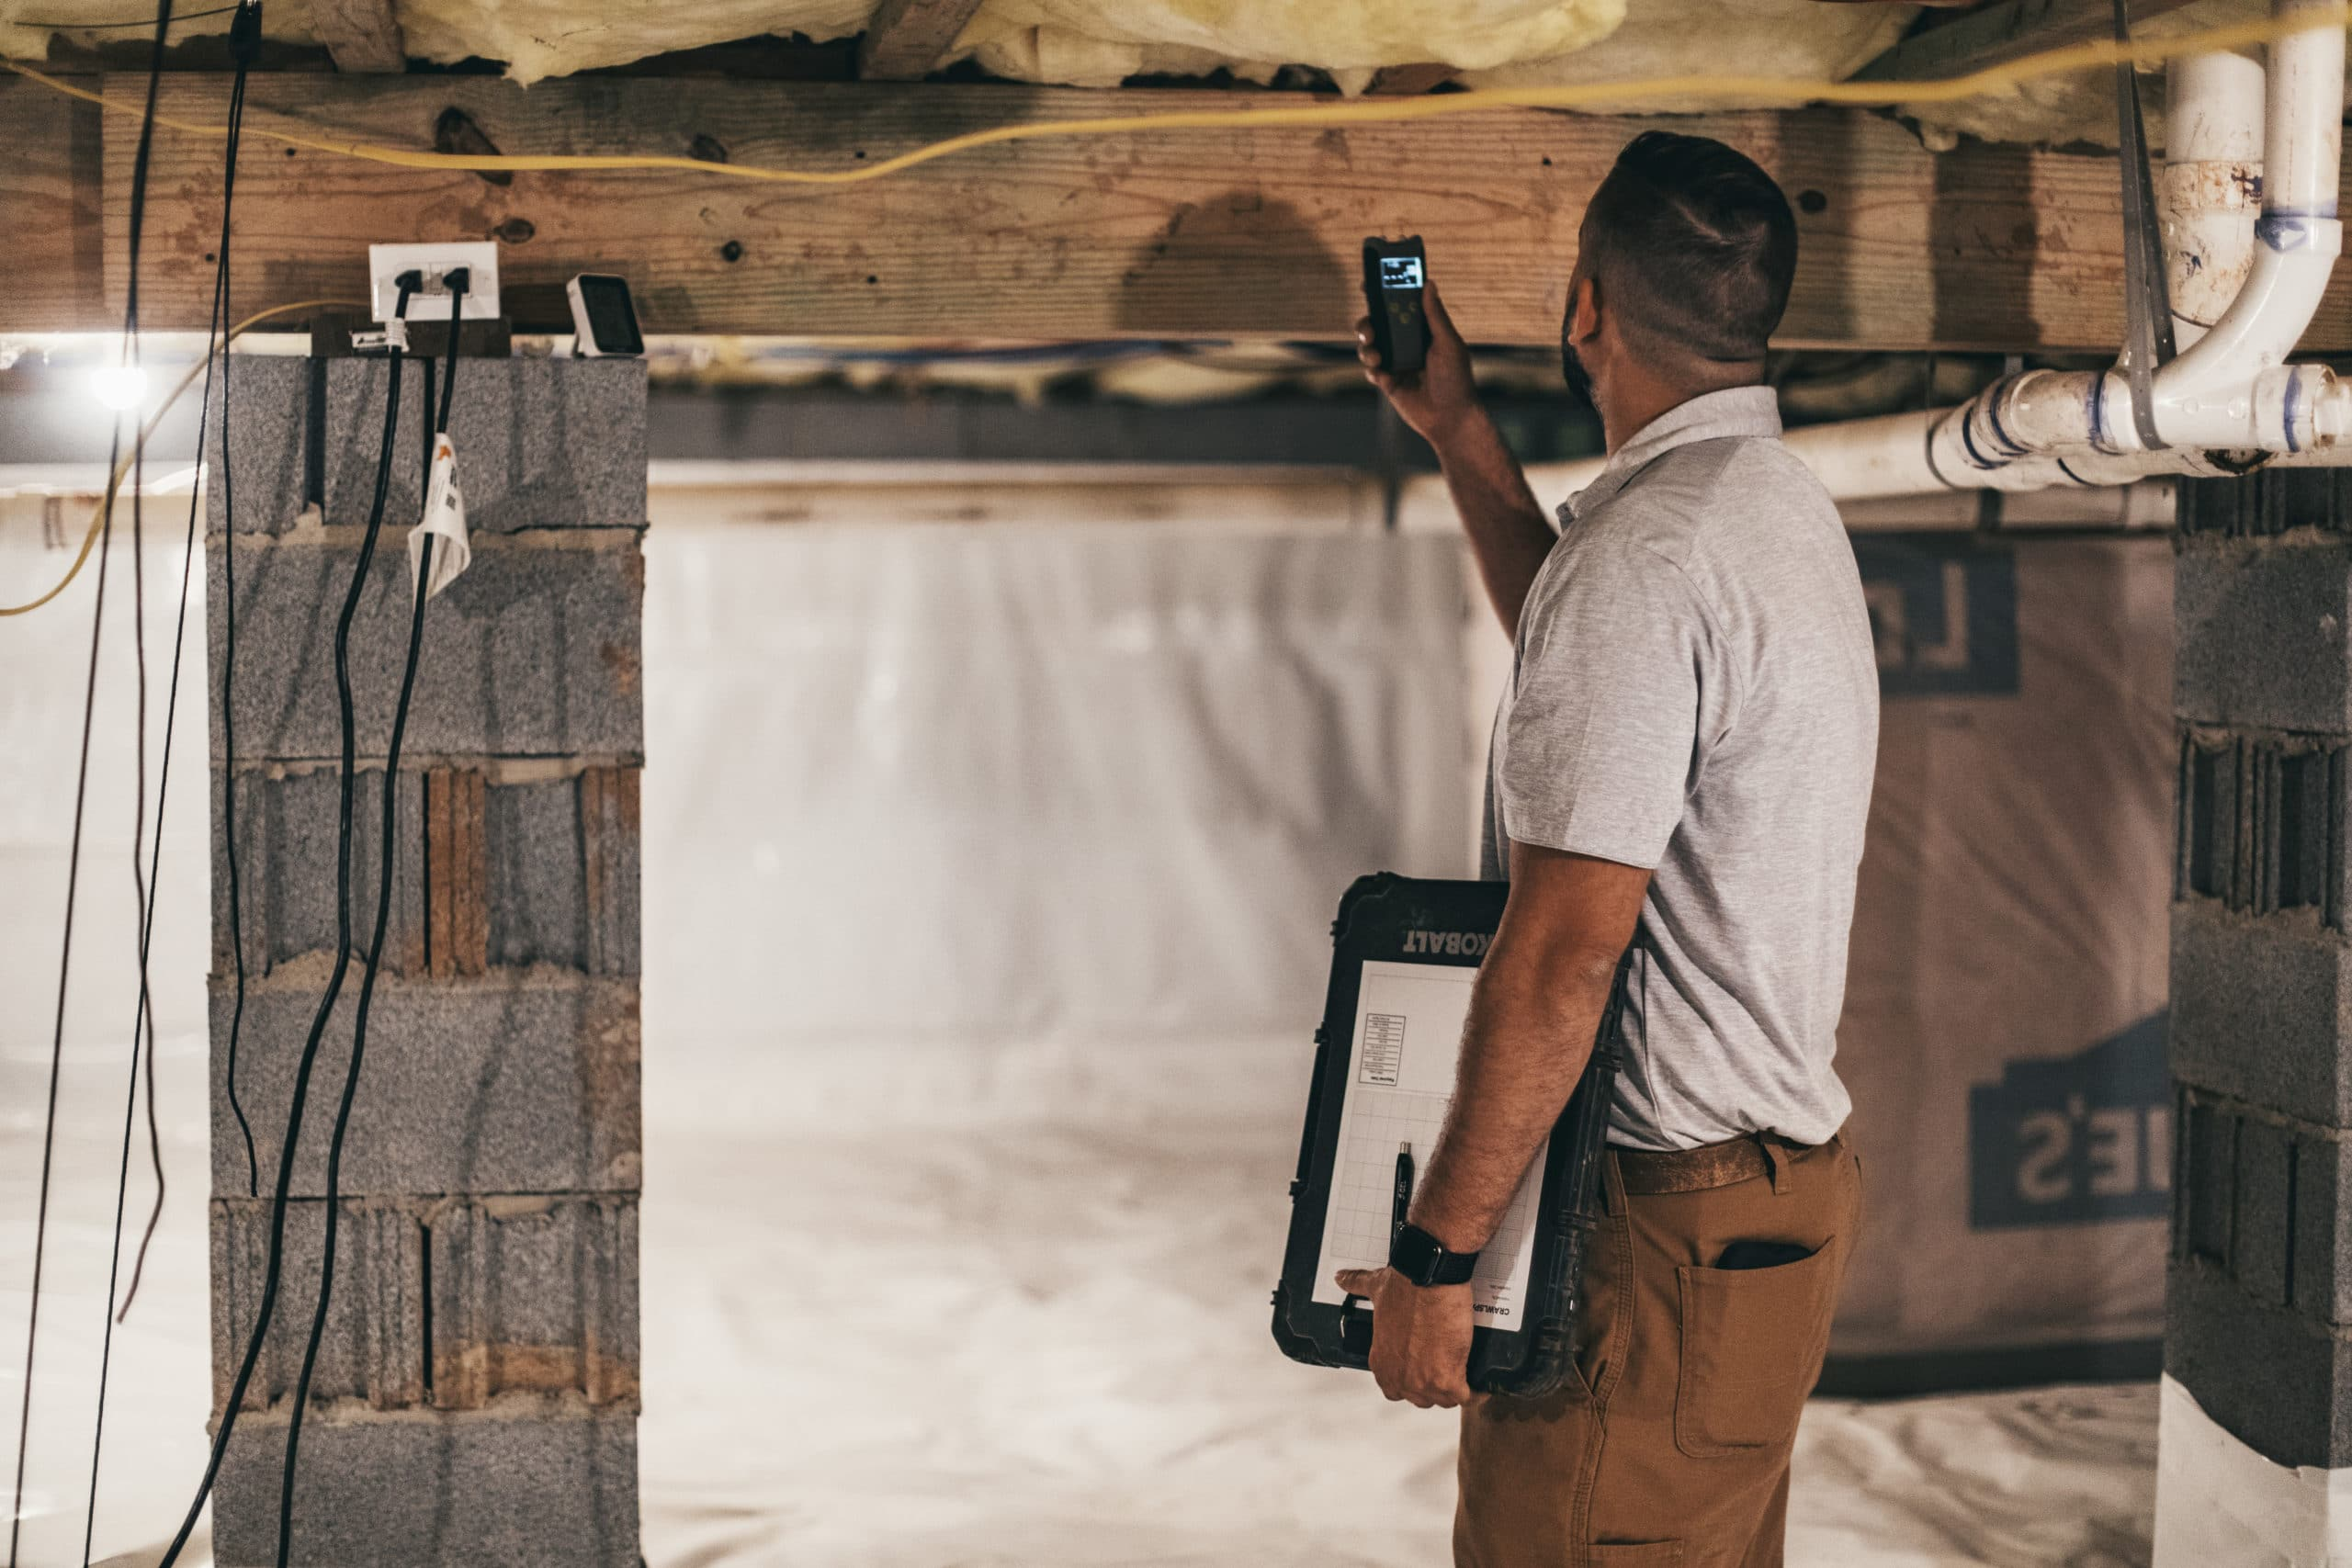 crawl space inspection being conducted before buying home